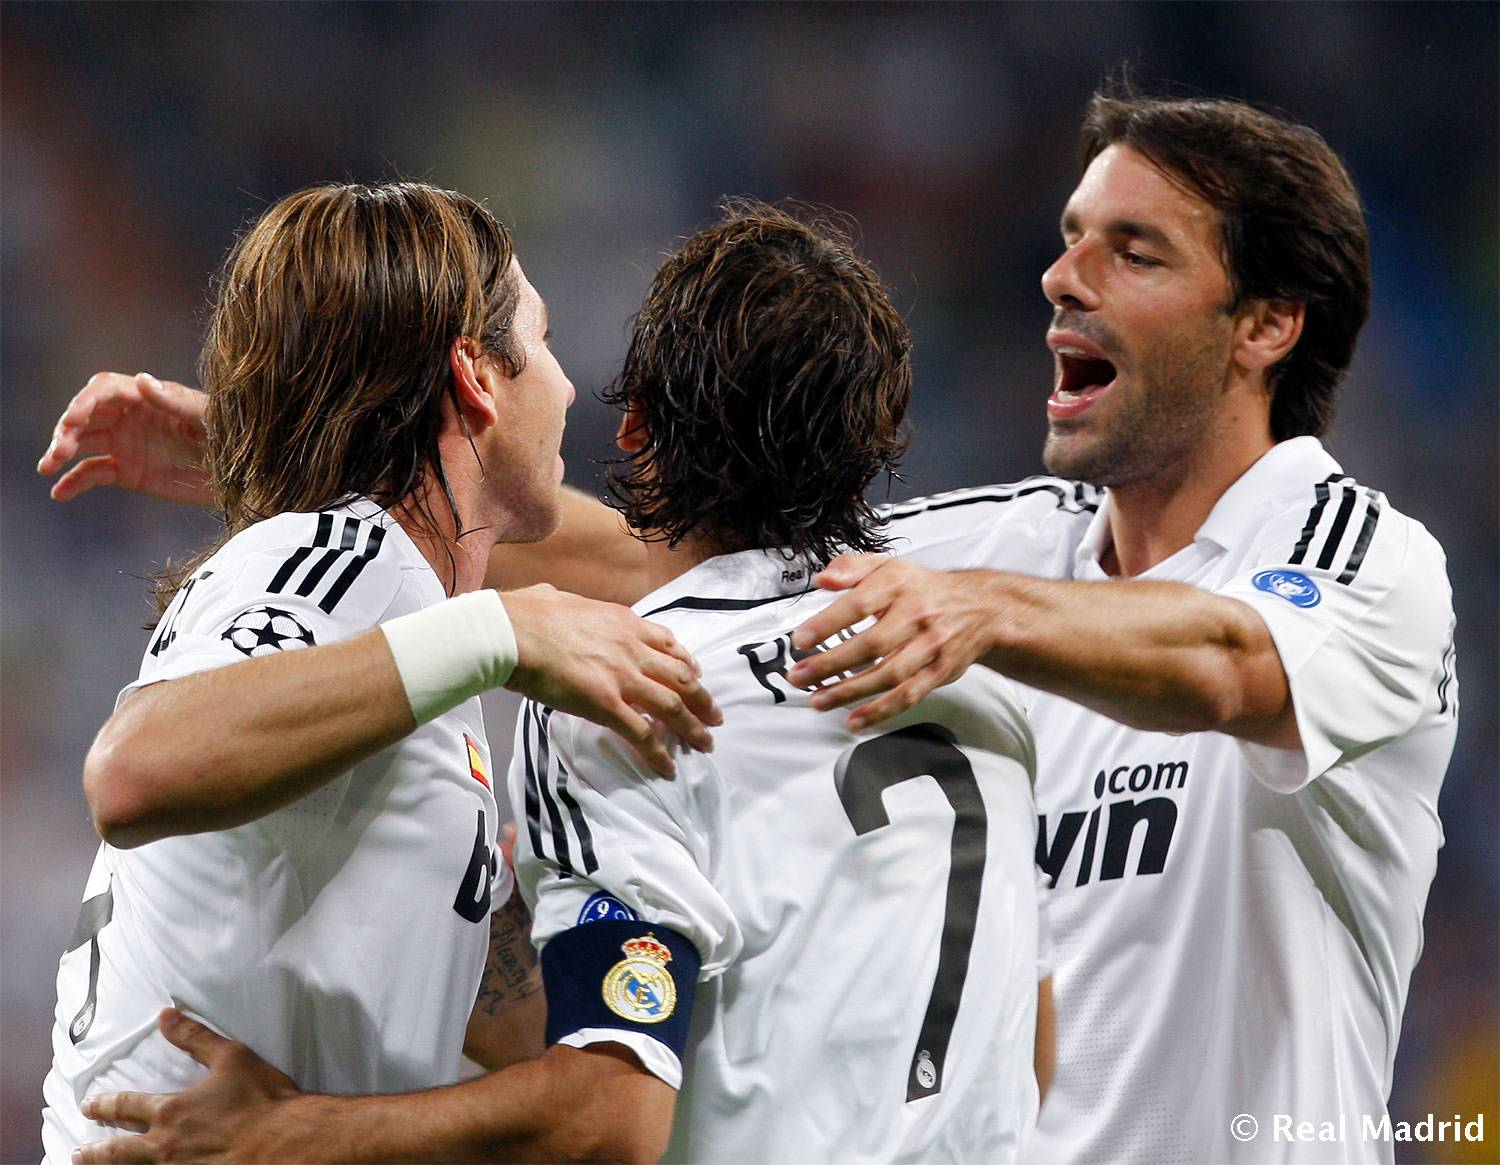 Real Madrid - Van Nistelrooy - 24-01-2020